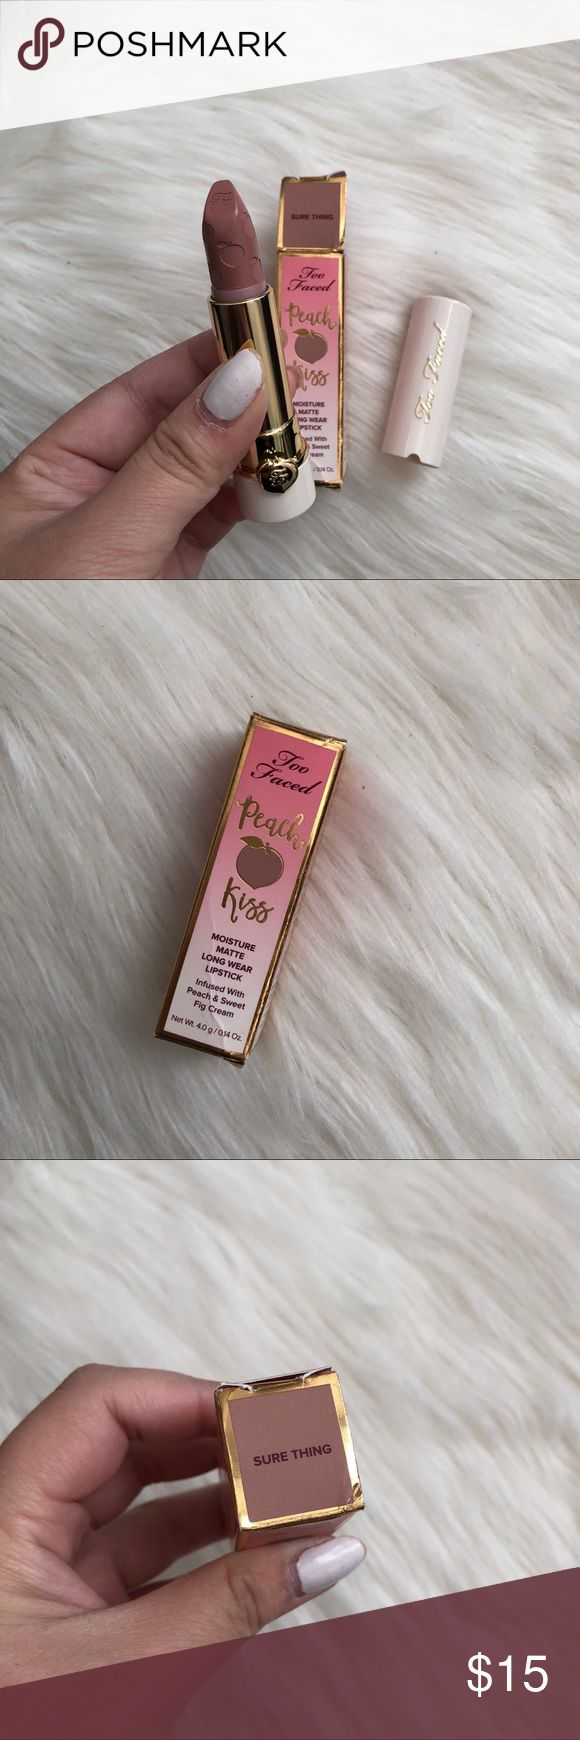 Too Faced Peach Kiss Lipstick Sure Thing NWT Too faced